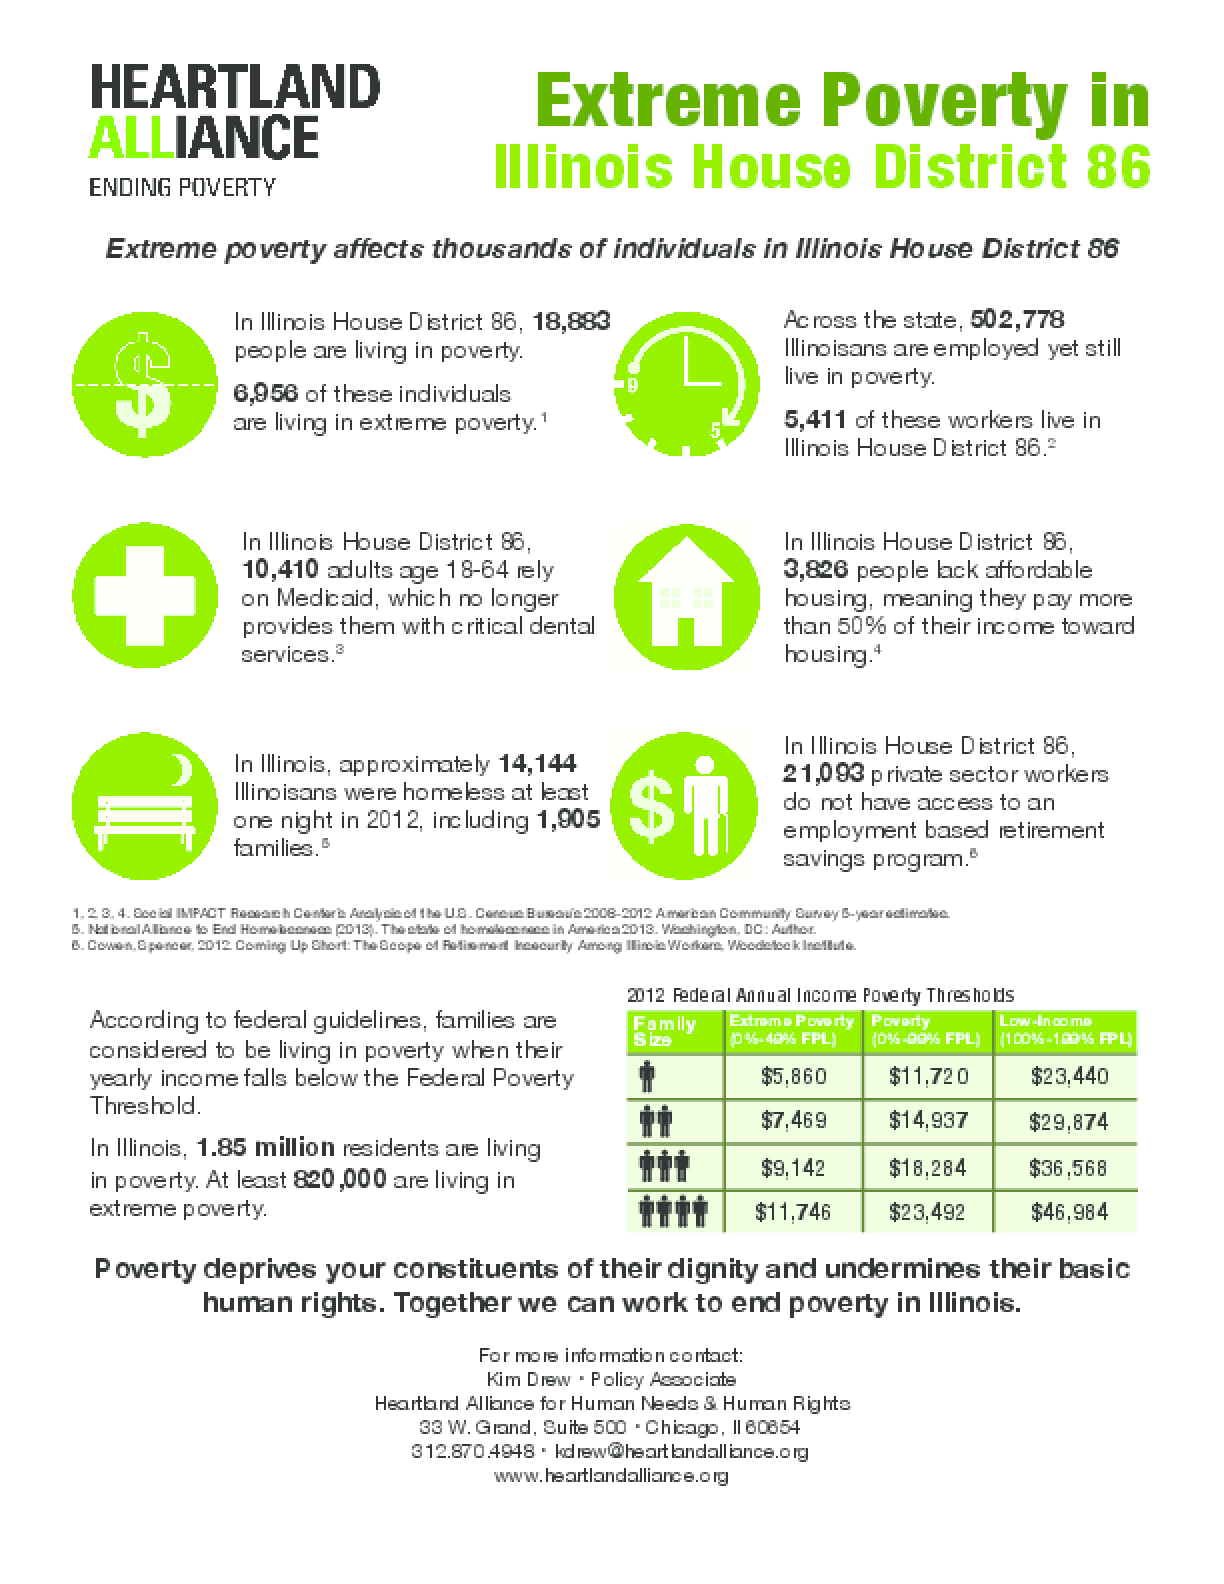 Poverty Fact Sheets for Illinois House District 86